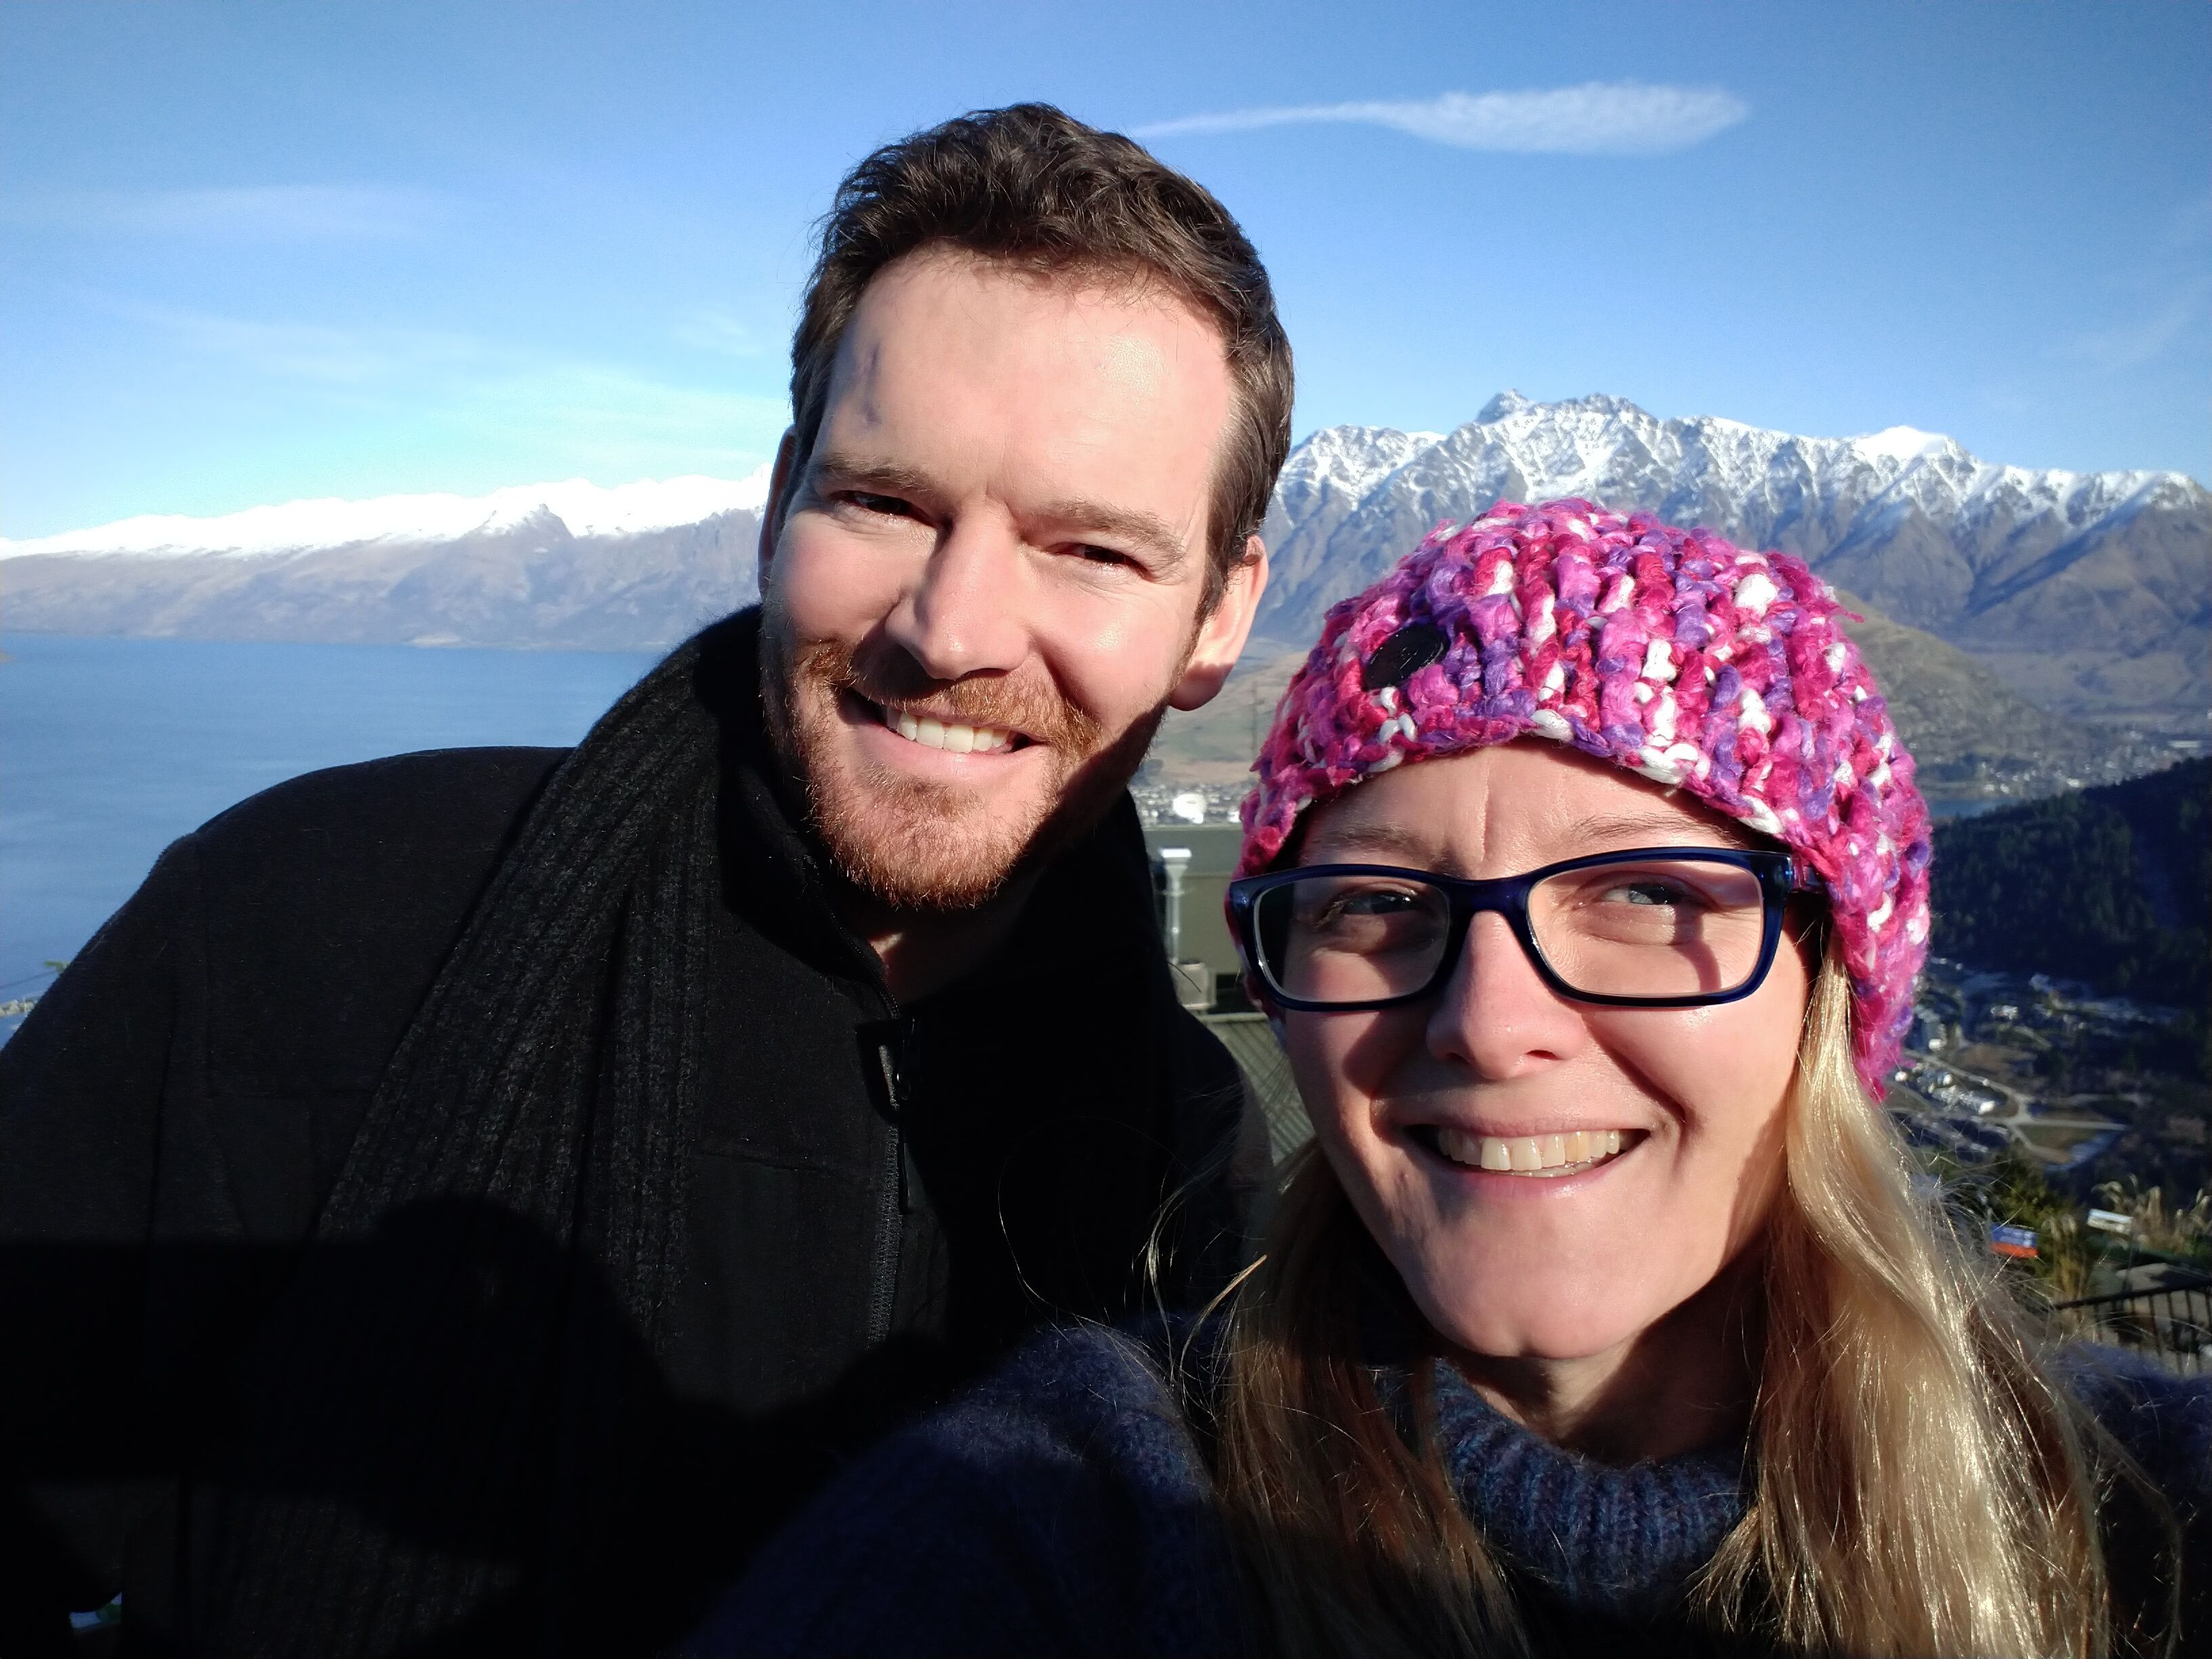 Annastashia Cambridge and Dr. Dan of Two Hands Health Ltd pictured standing in front of a snow-capped mountain range in New Zealand